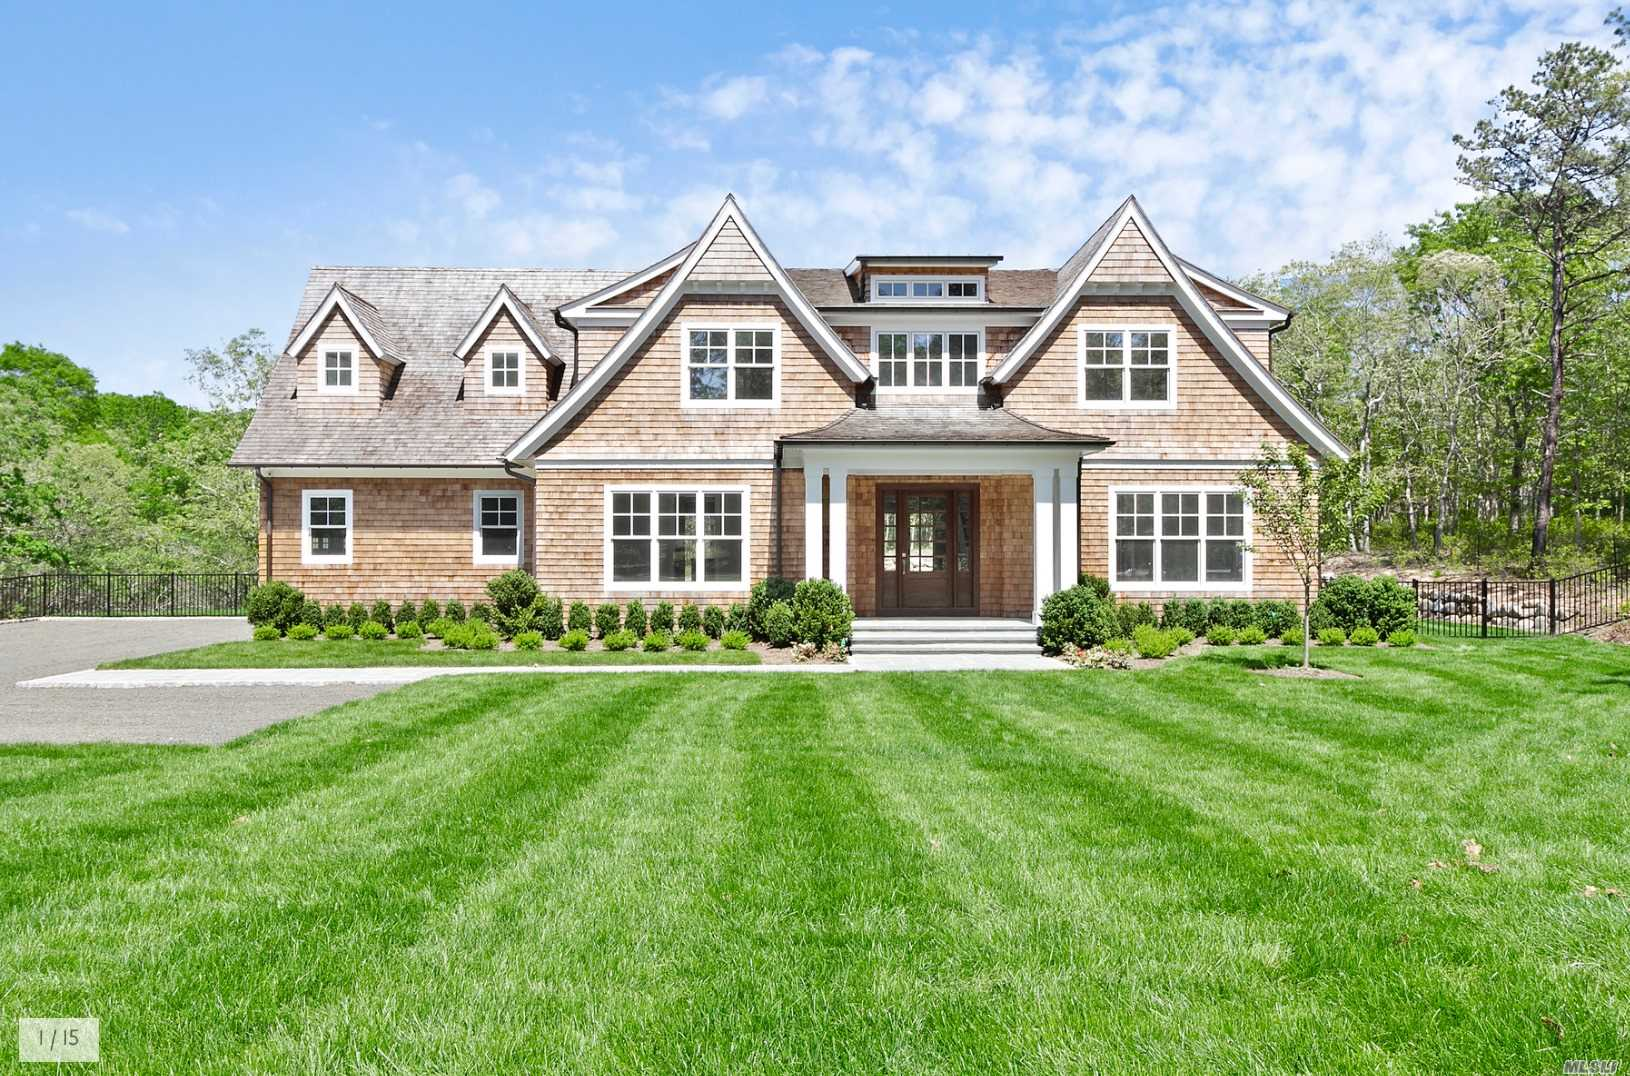 Photo of home for sale at 249 Toppings Path, Sagaponack NY